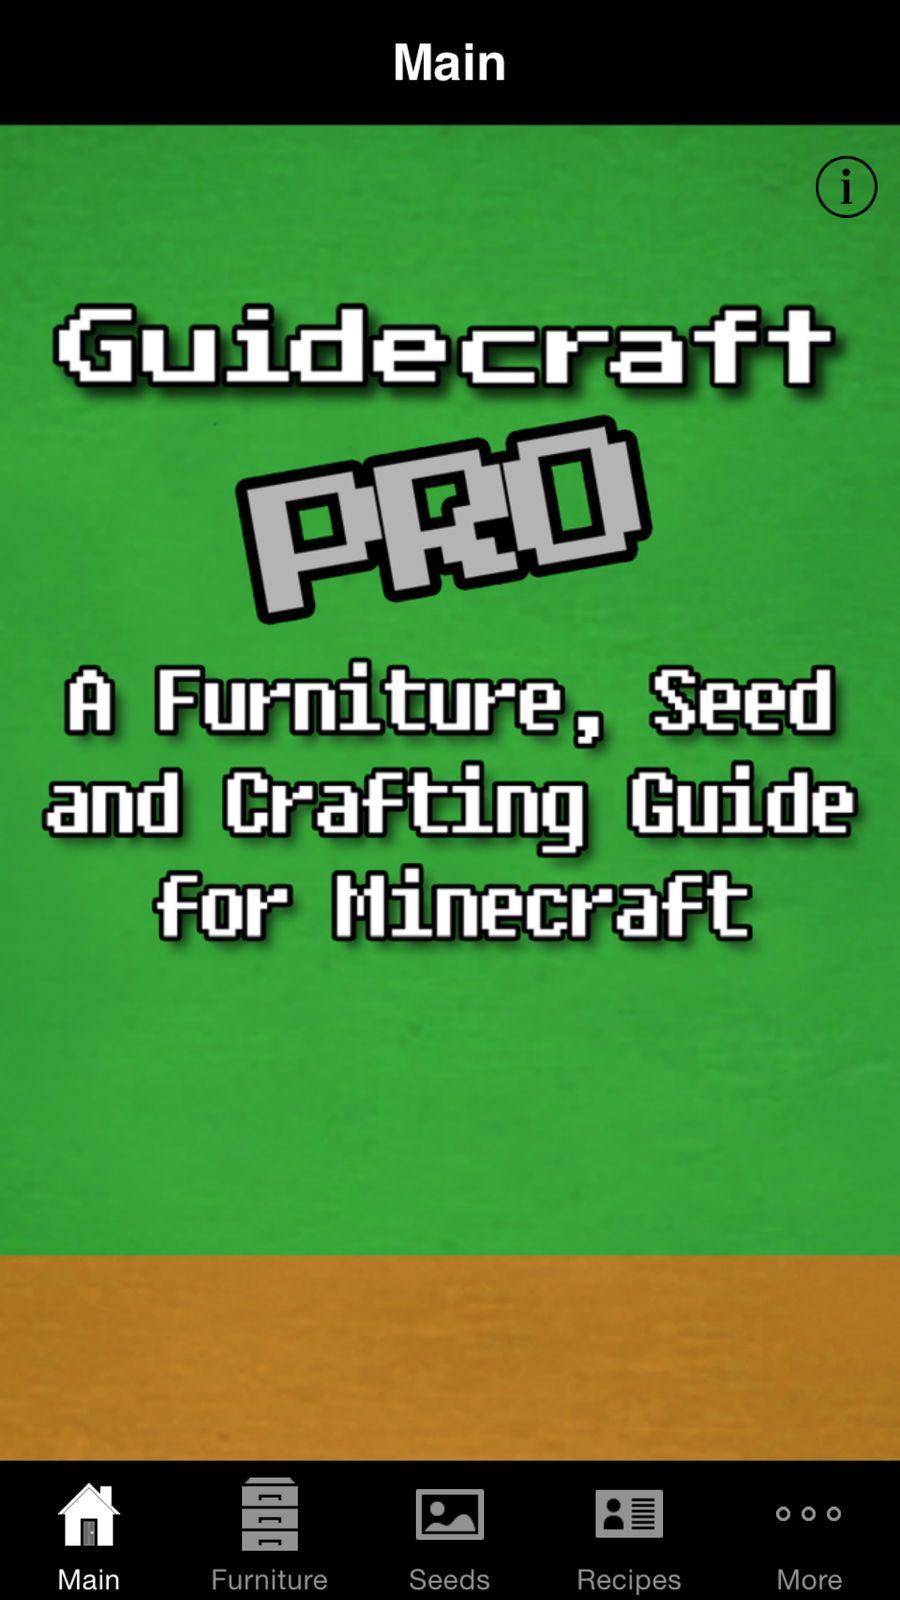 Guidecraft Pro Furniture, Seeds.. for Minecraft Games